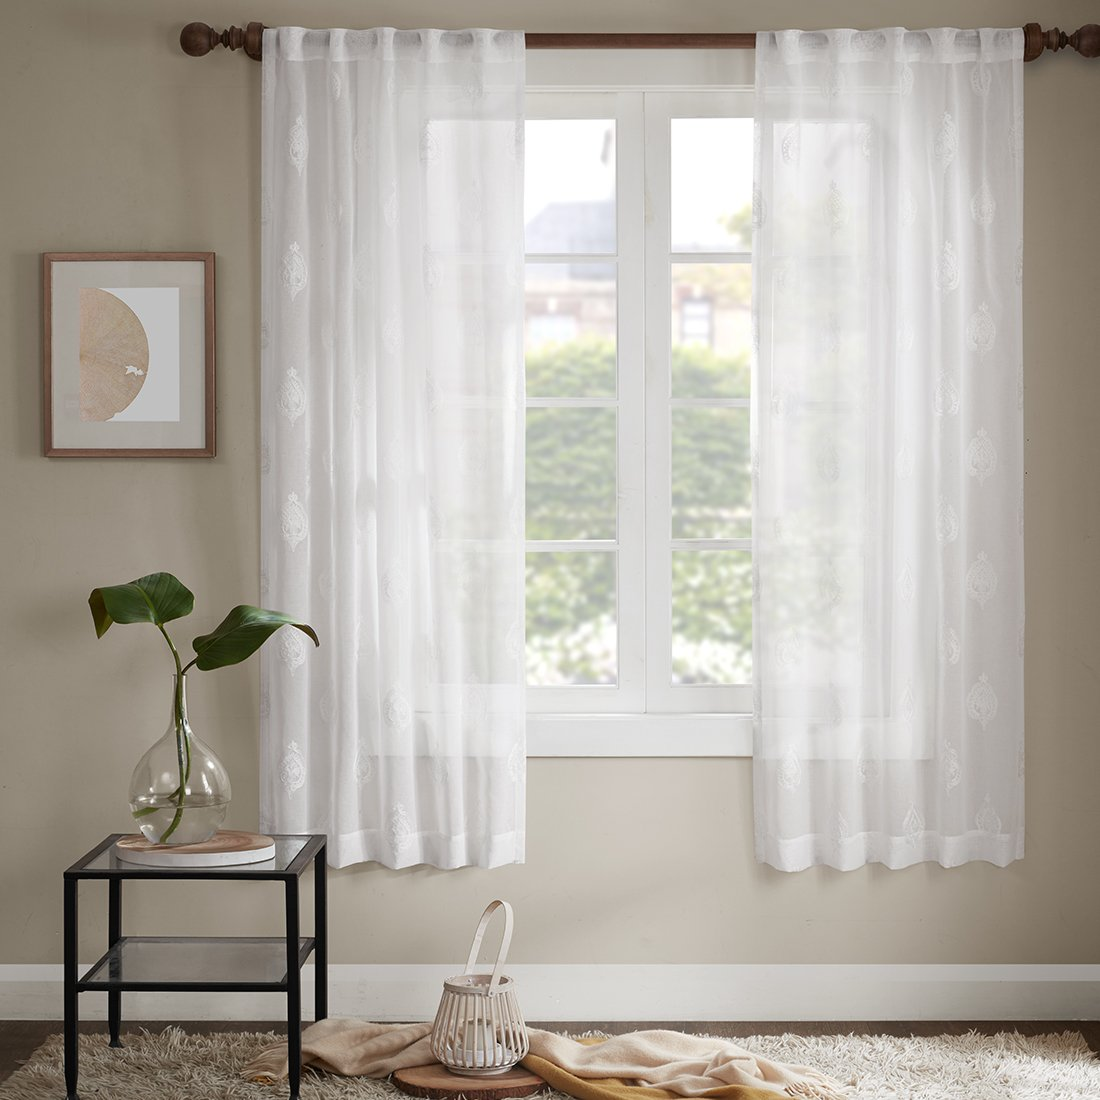 Aria Off White Curtains Bedroom Curtain - Classical Embroidery Voile Ultra Sheer High Thread with Rod Pocket & Back Tab (39